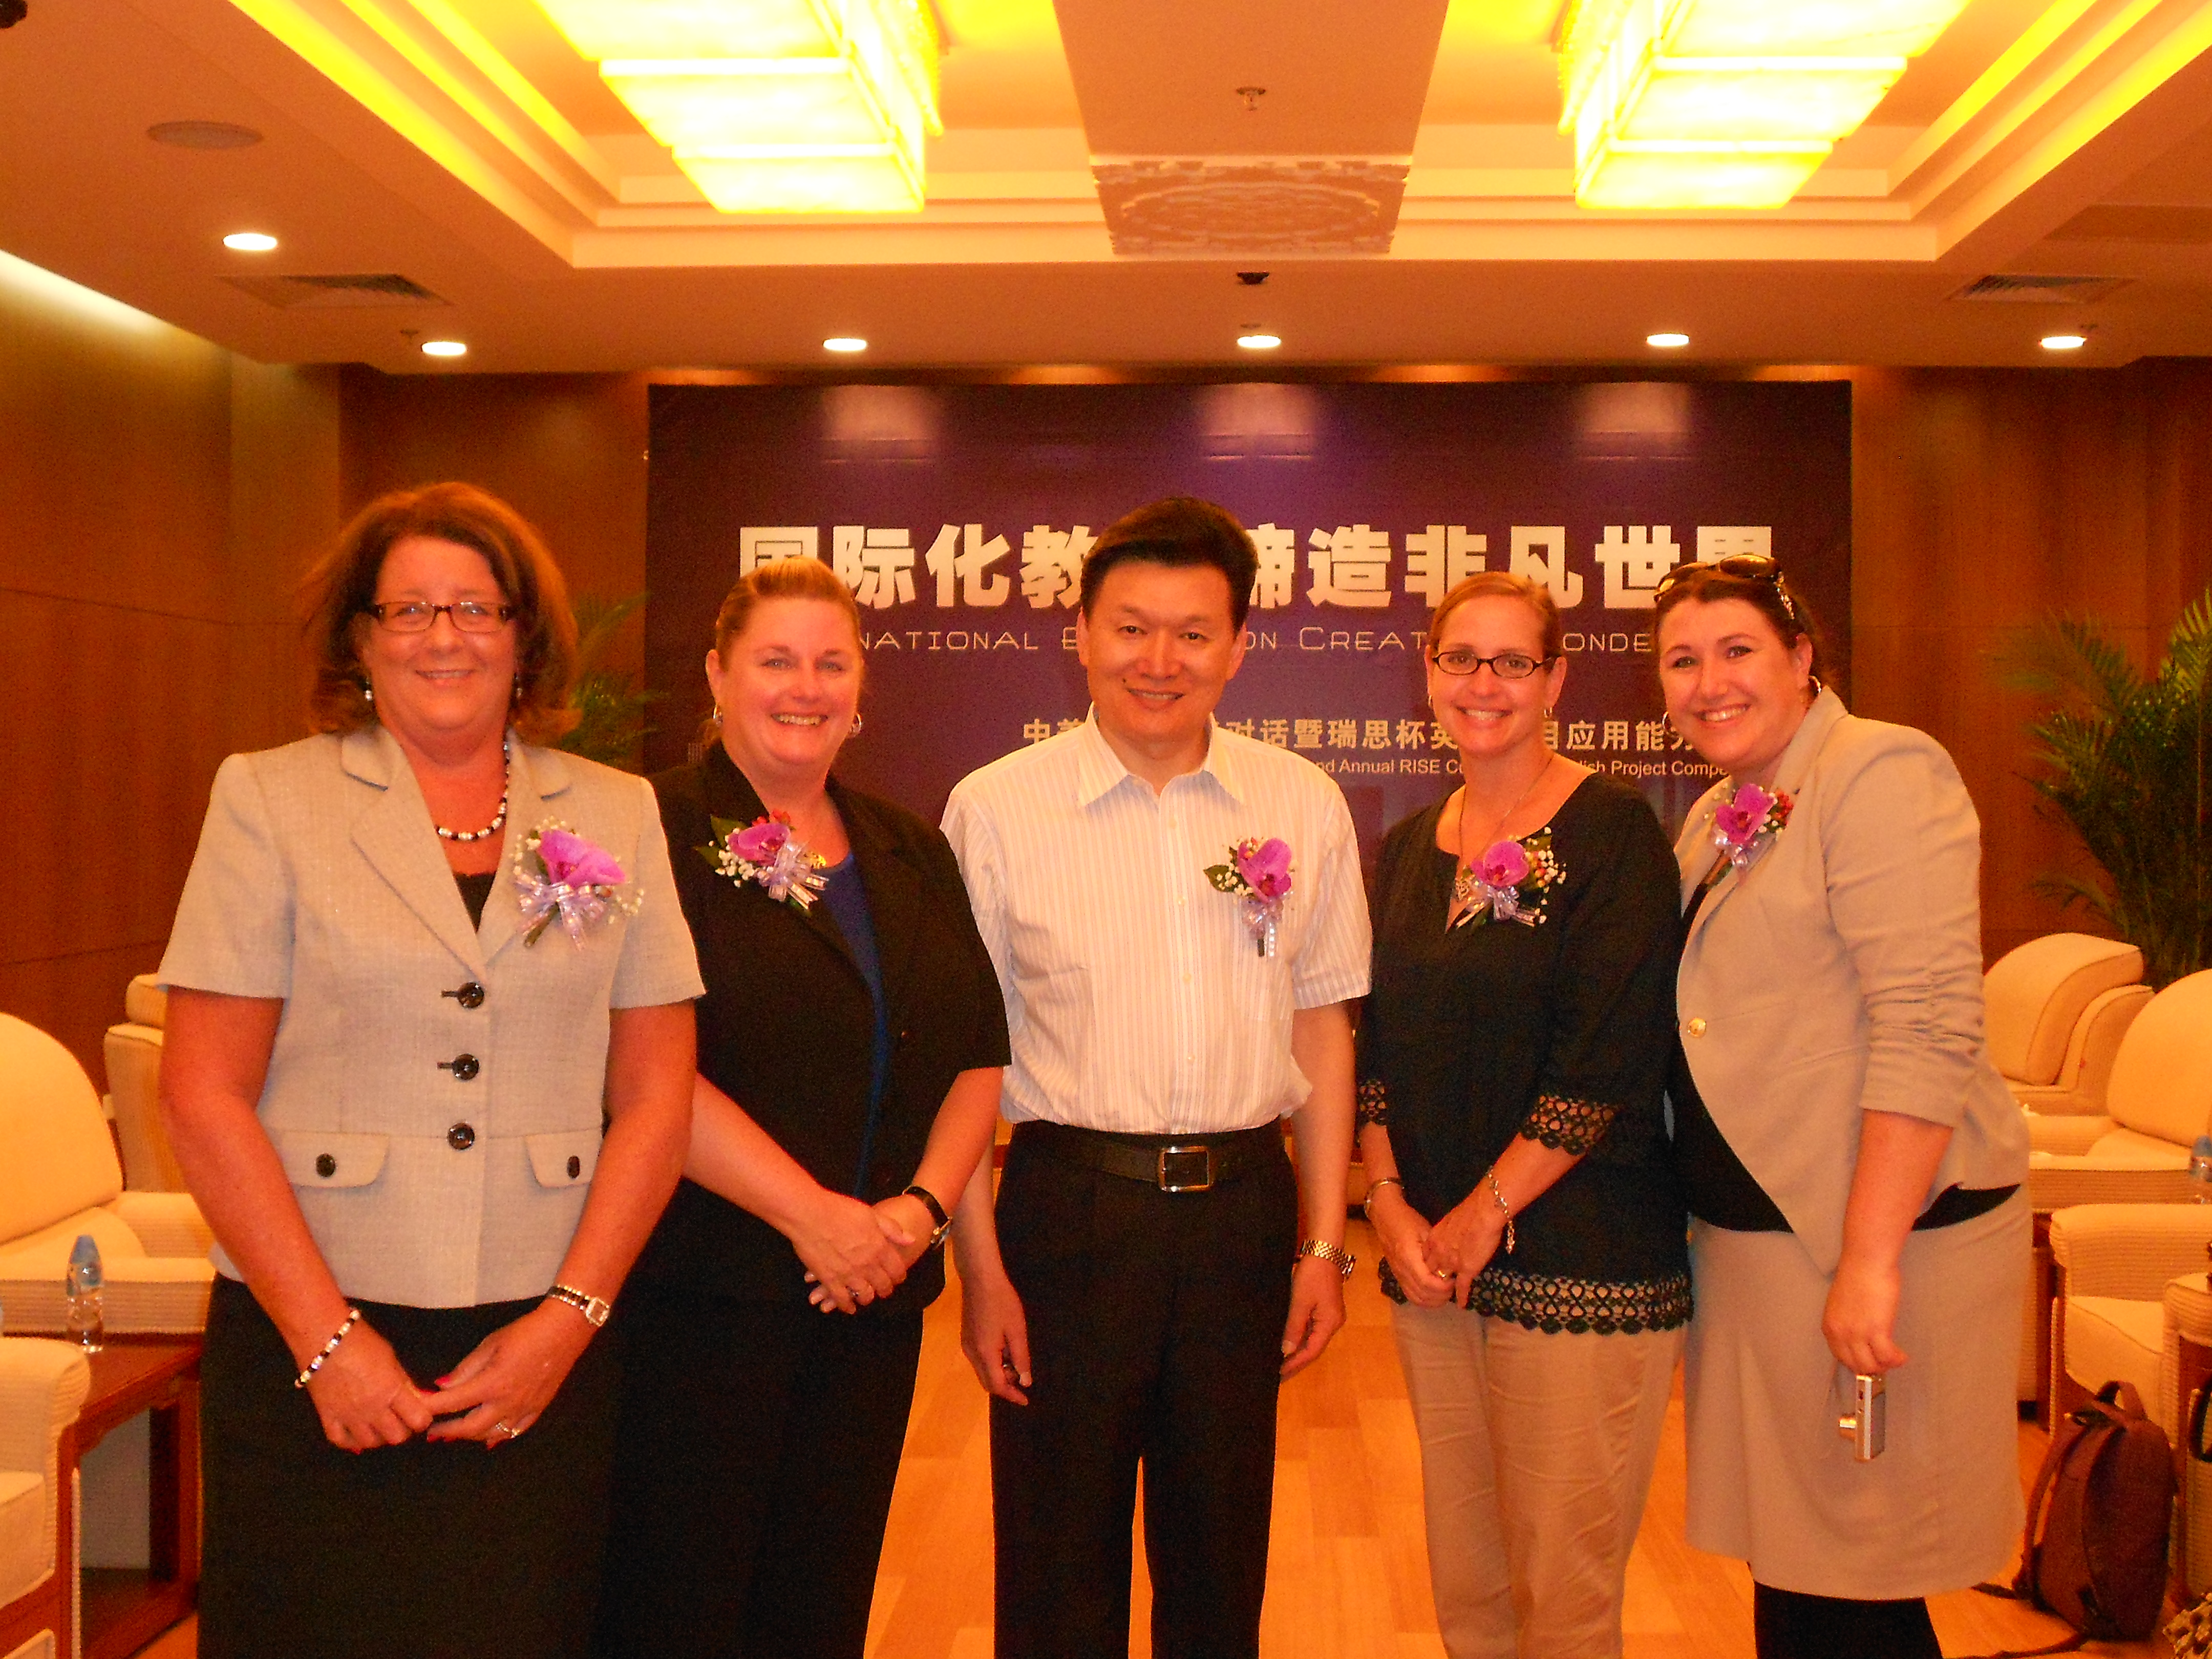 St. Lucie County Administrators Visit China